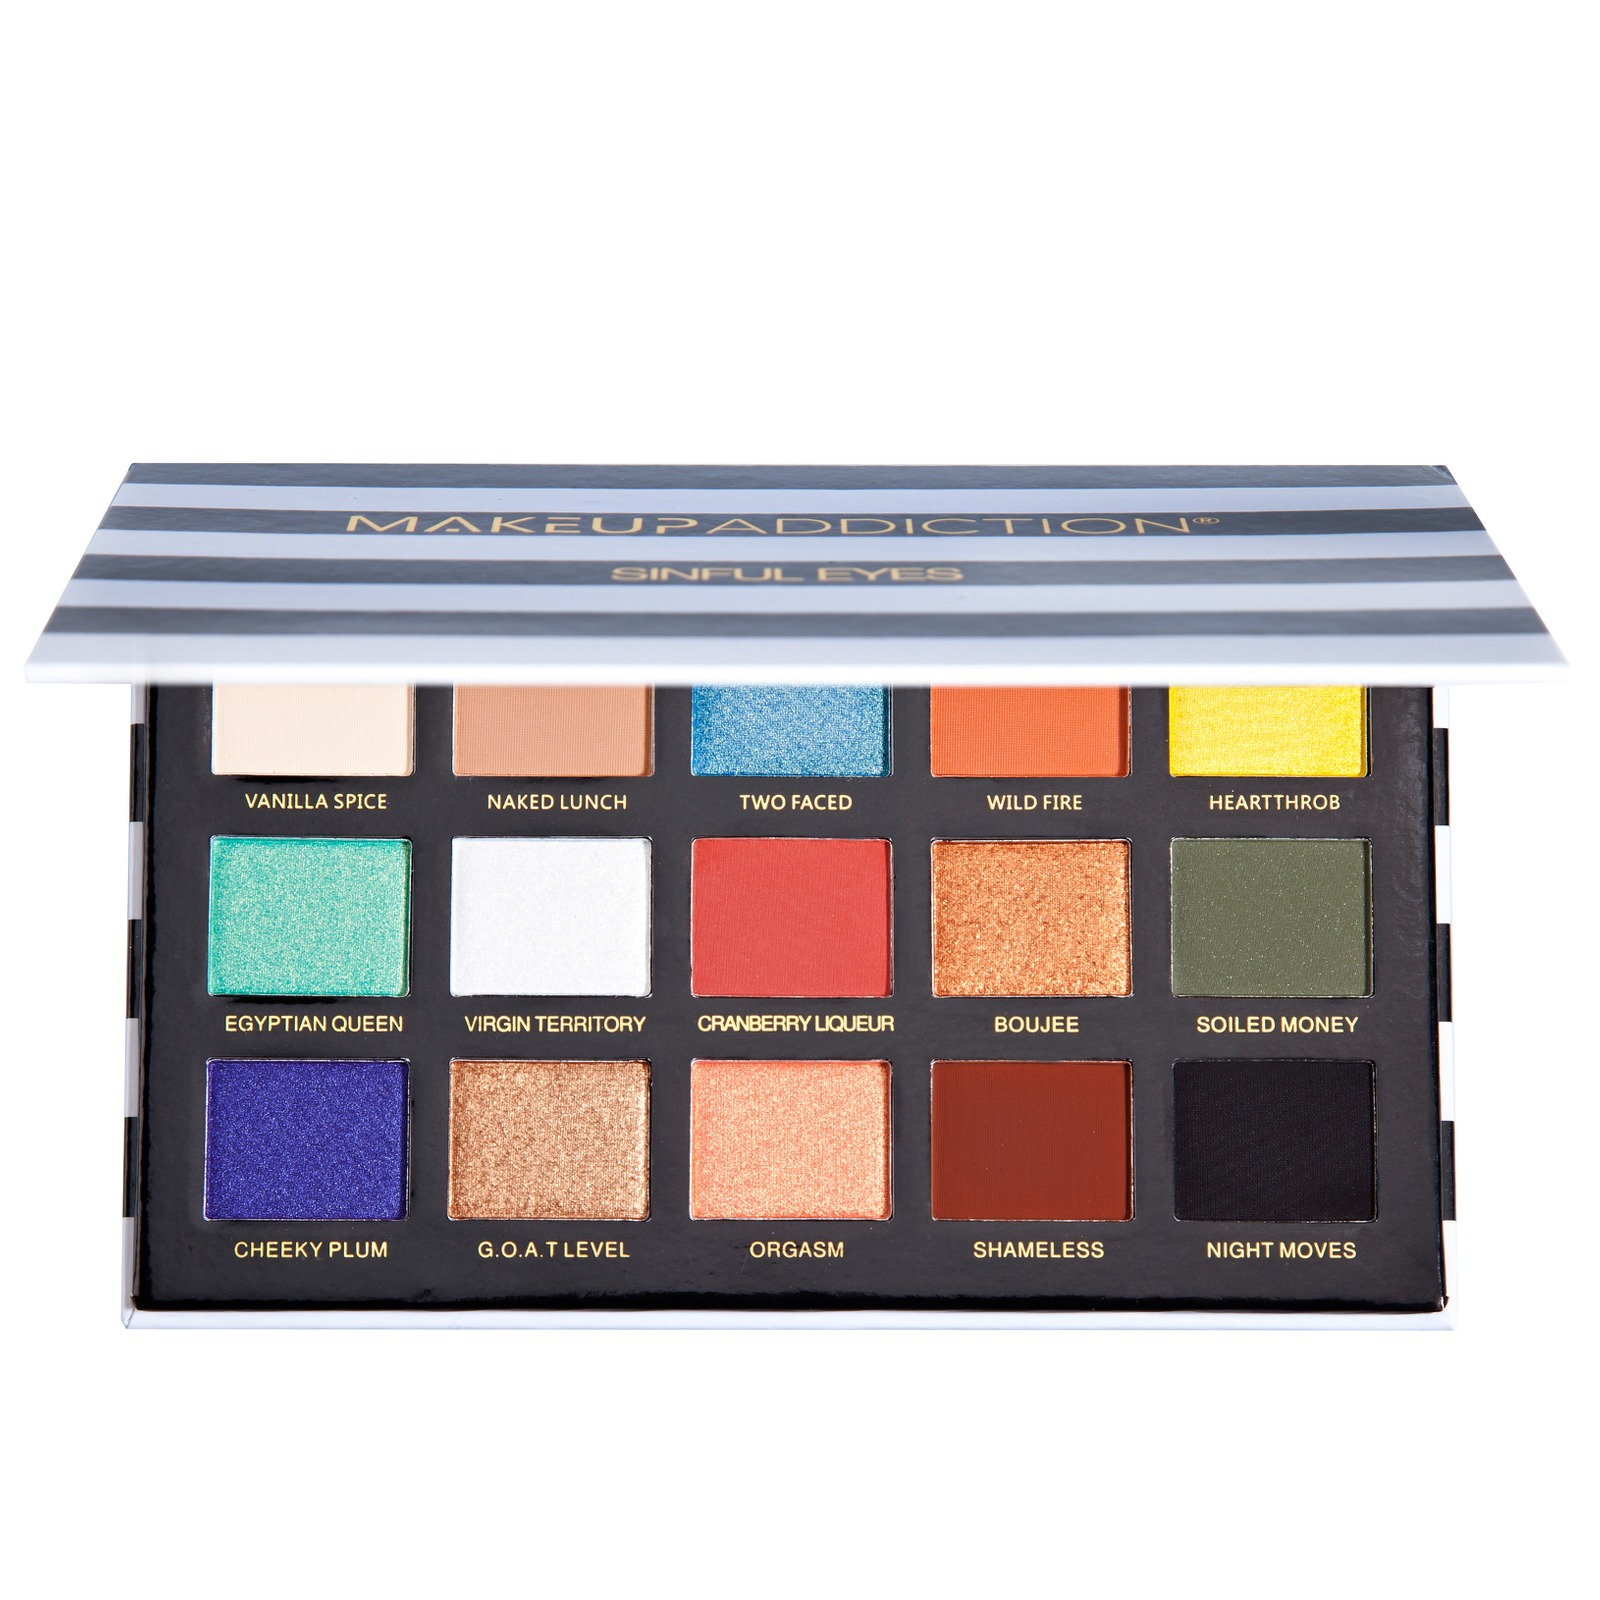 Makeup Addiction Eyeshadow Palettes Sinful Eyes Palette